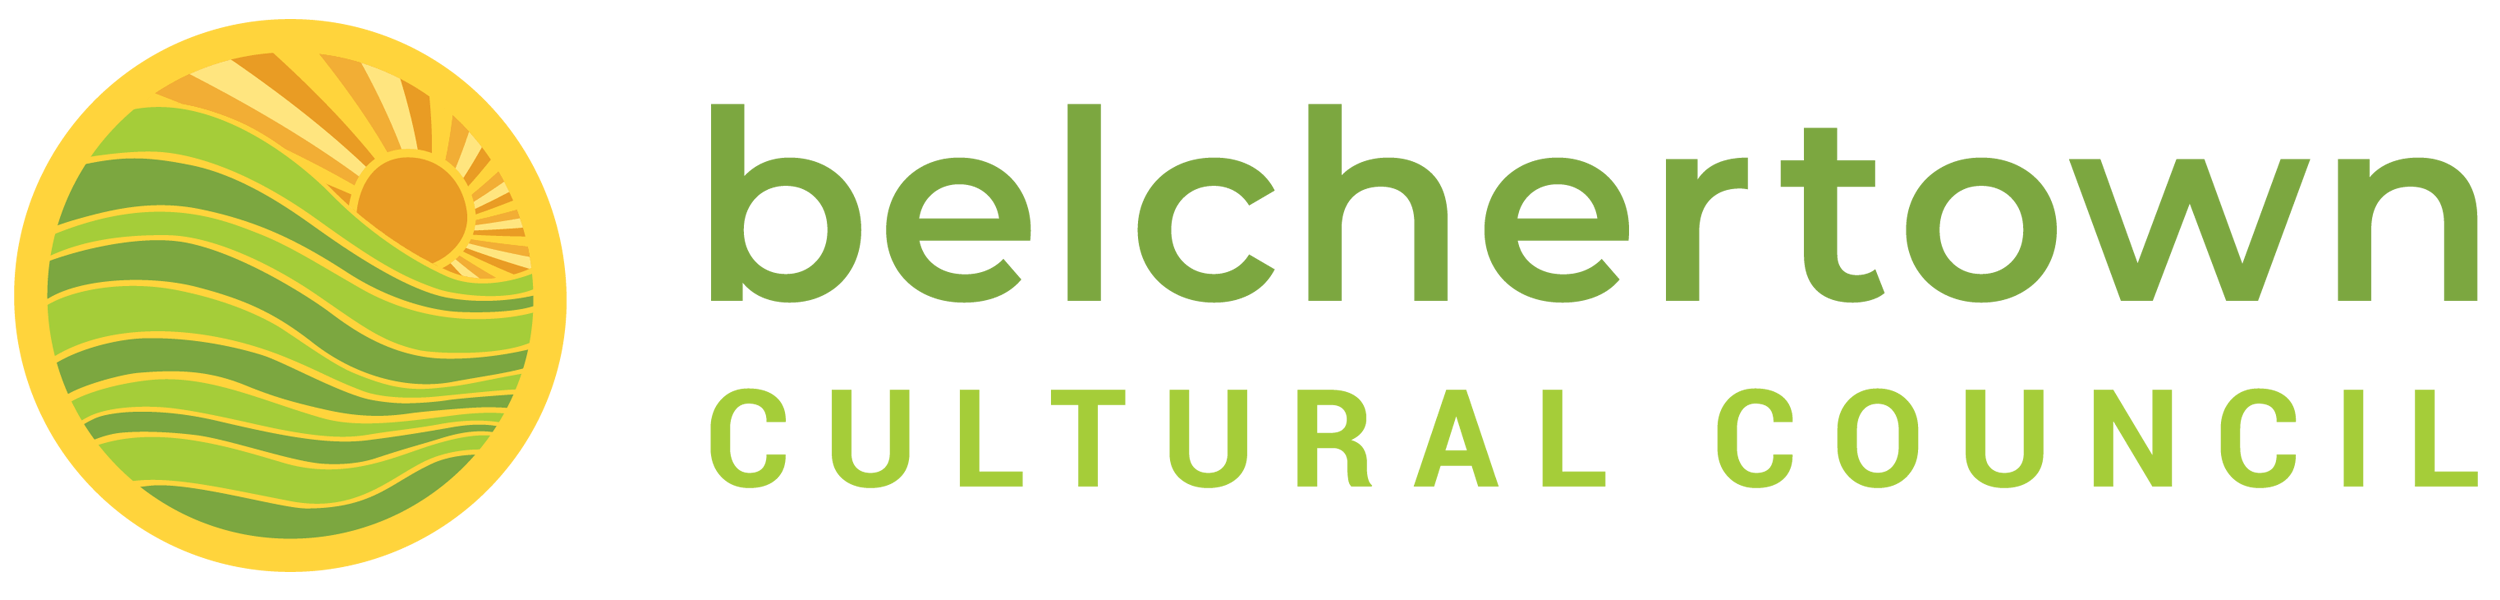 Belchertown Cultural Council